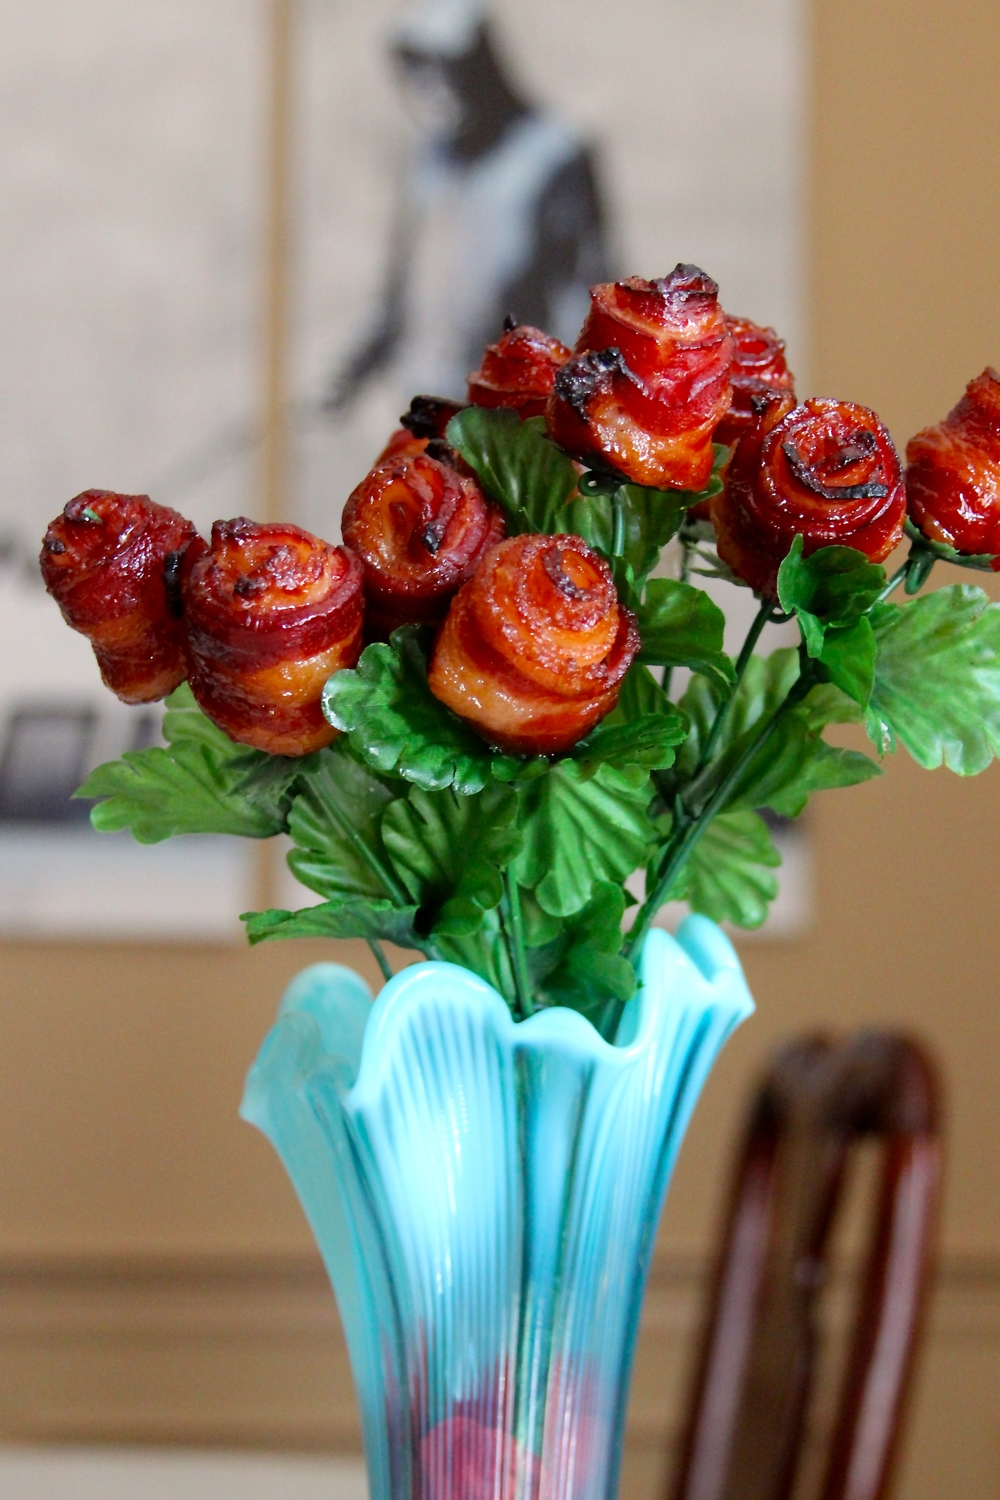 Bacon Roses on the Grill